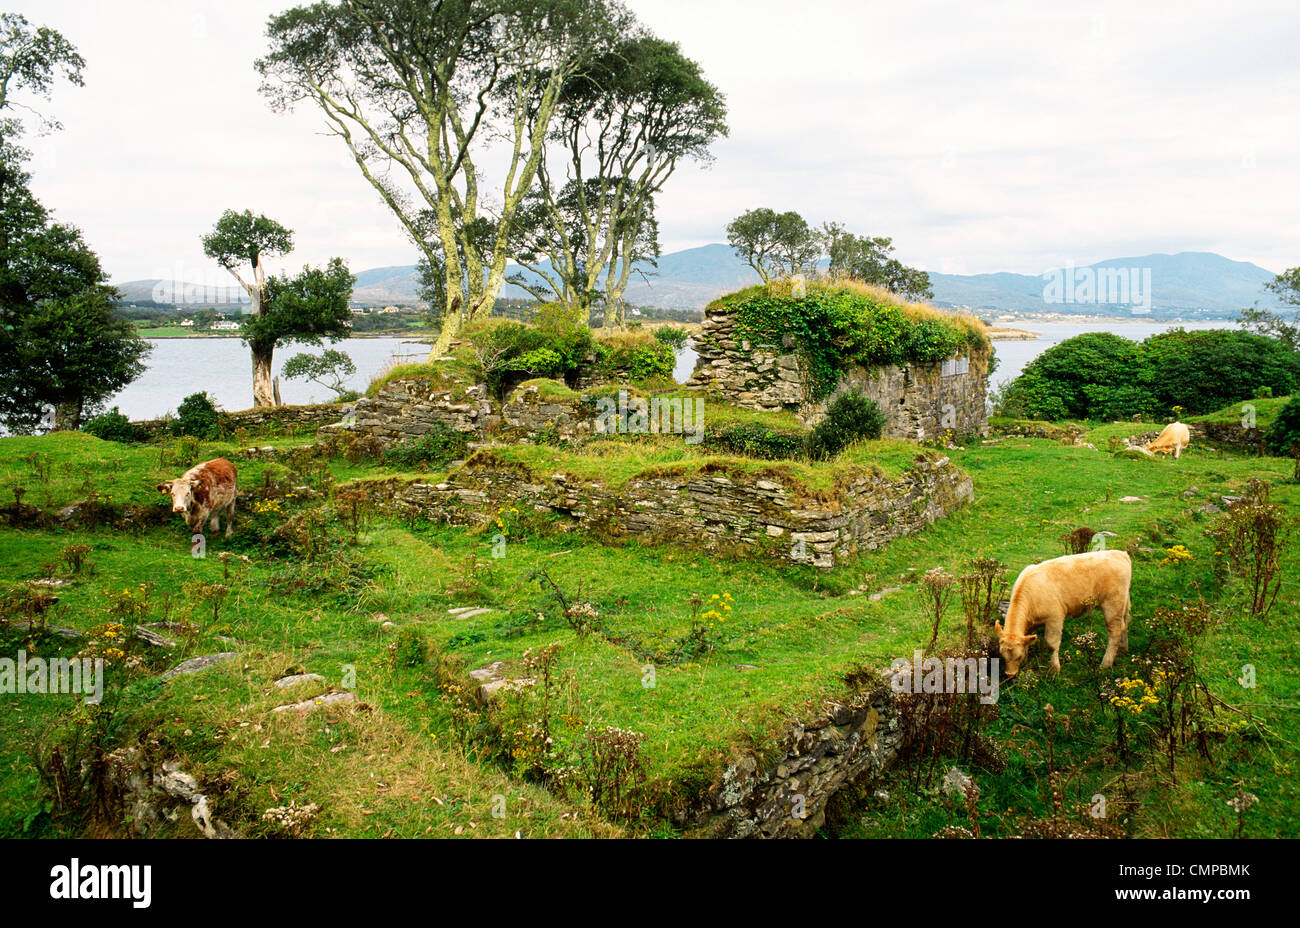 Dunboy Castle ruins on the south of Beara Peninsula, County Cork, Ireland. Stronghold of Gaelic clan leader O'Sullivan - Stock Image